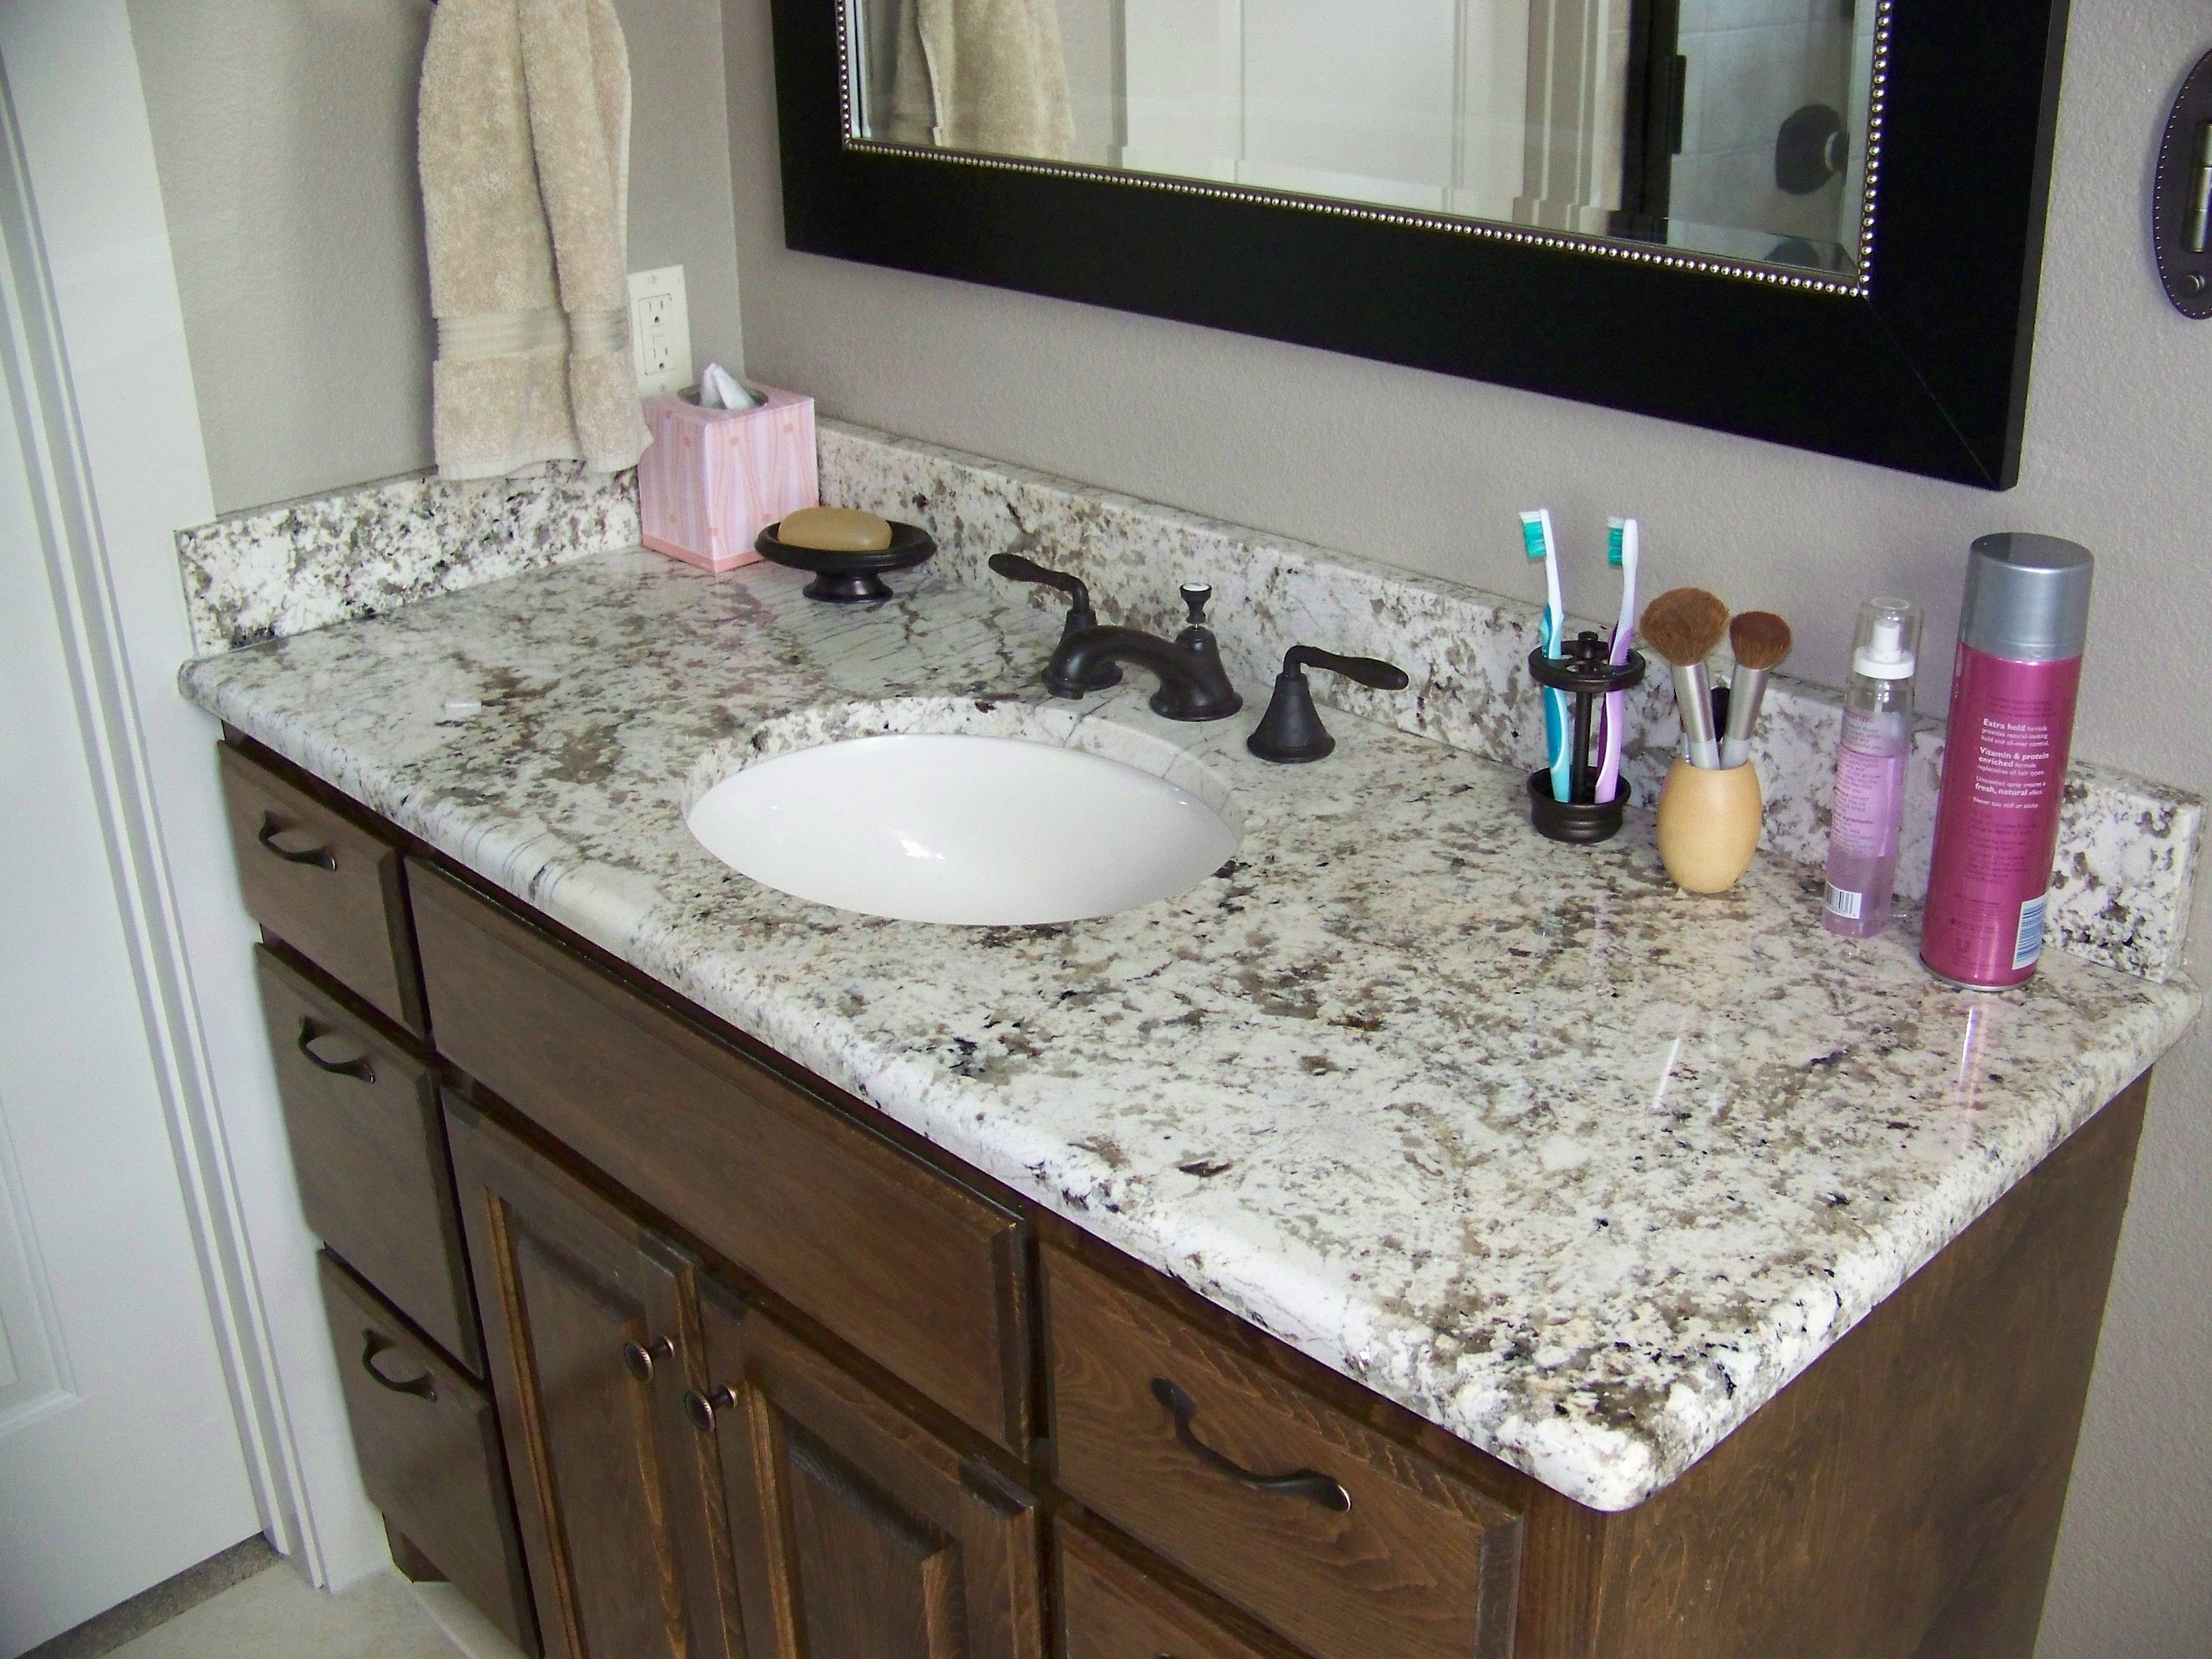 Bathroom vanities dallas tx - Newstar Supply Wilson Sons Garrett Granite Countertops Granite Vanity Granite Countertop China Factory Polished Full Bullnose